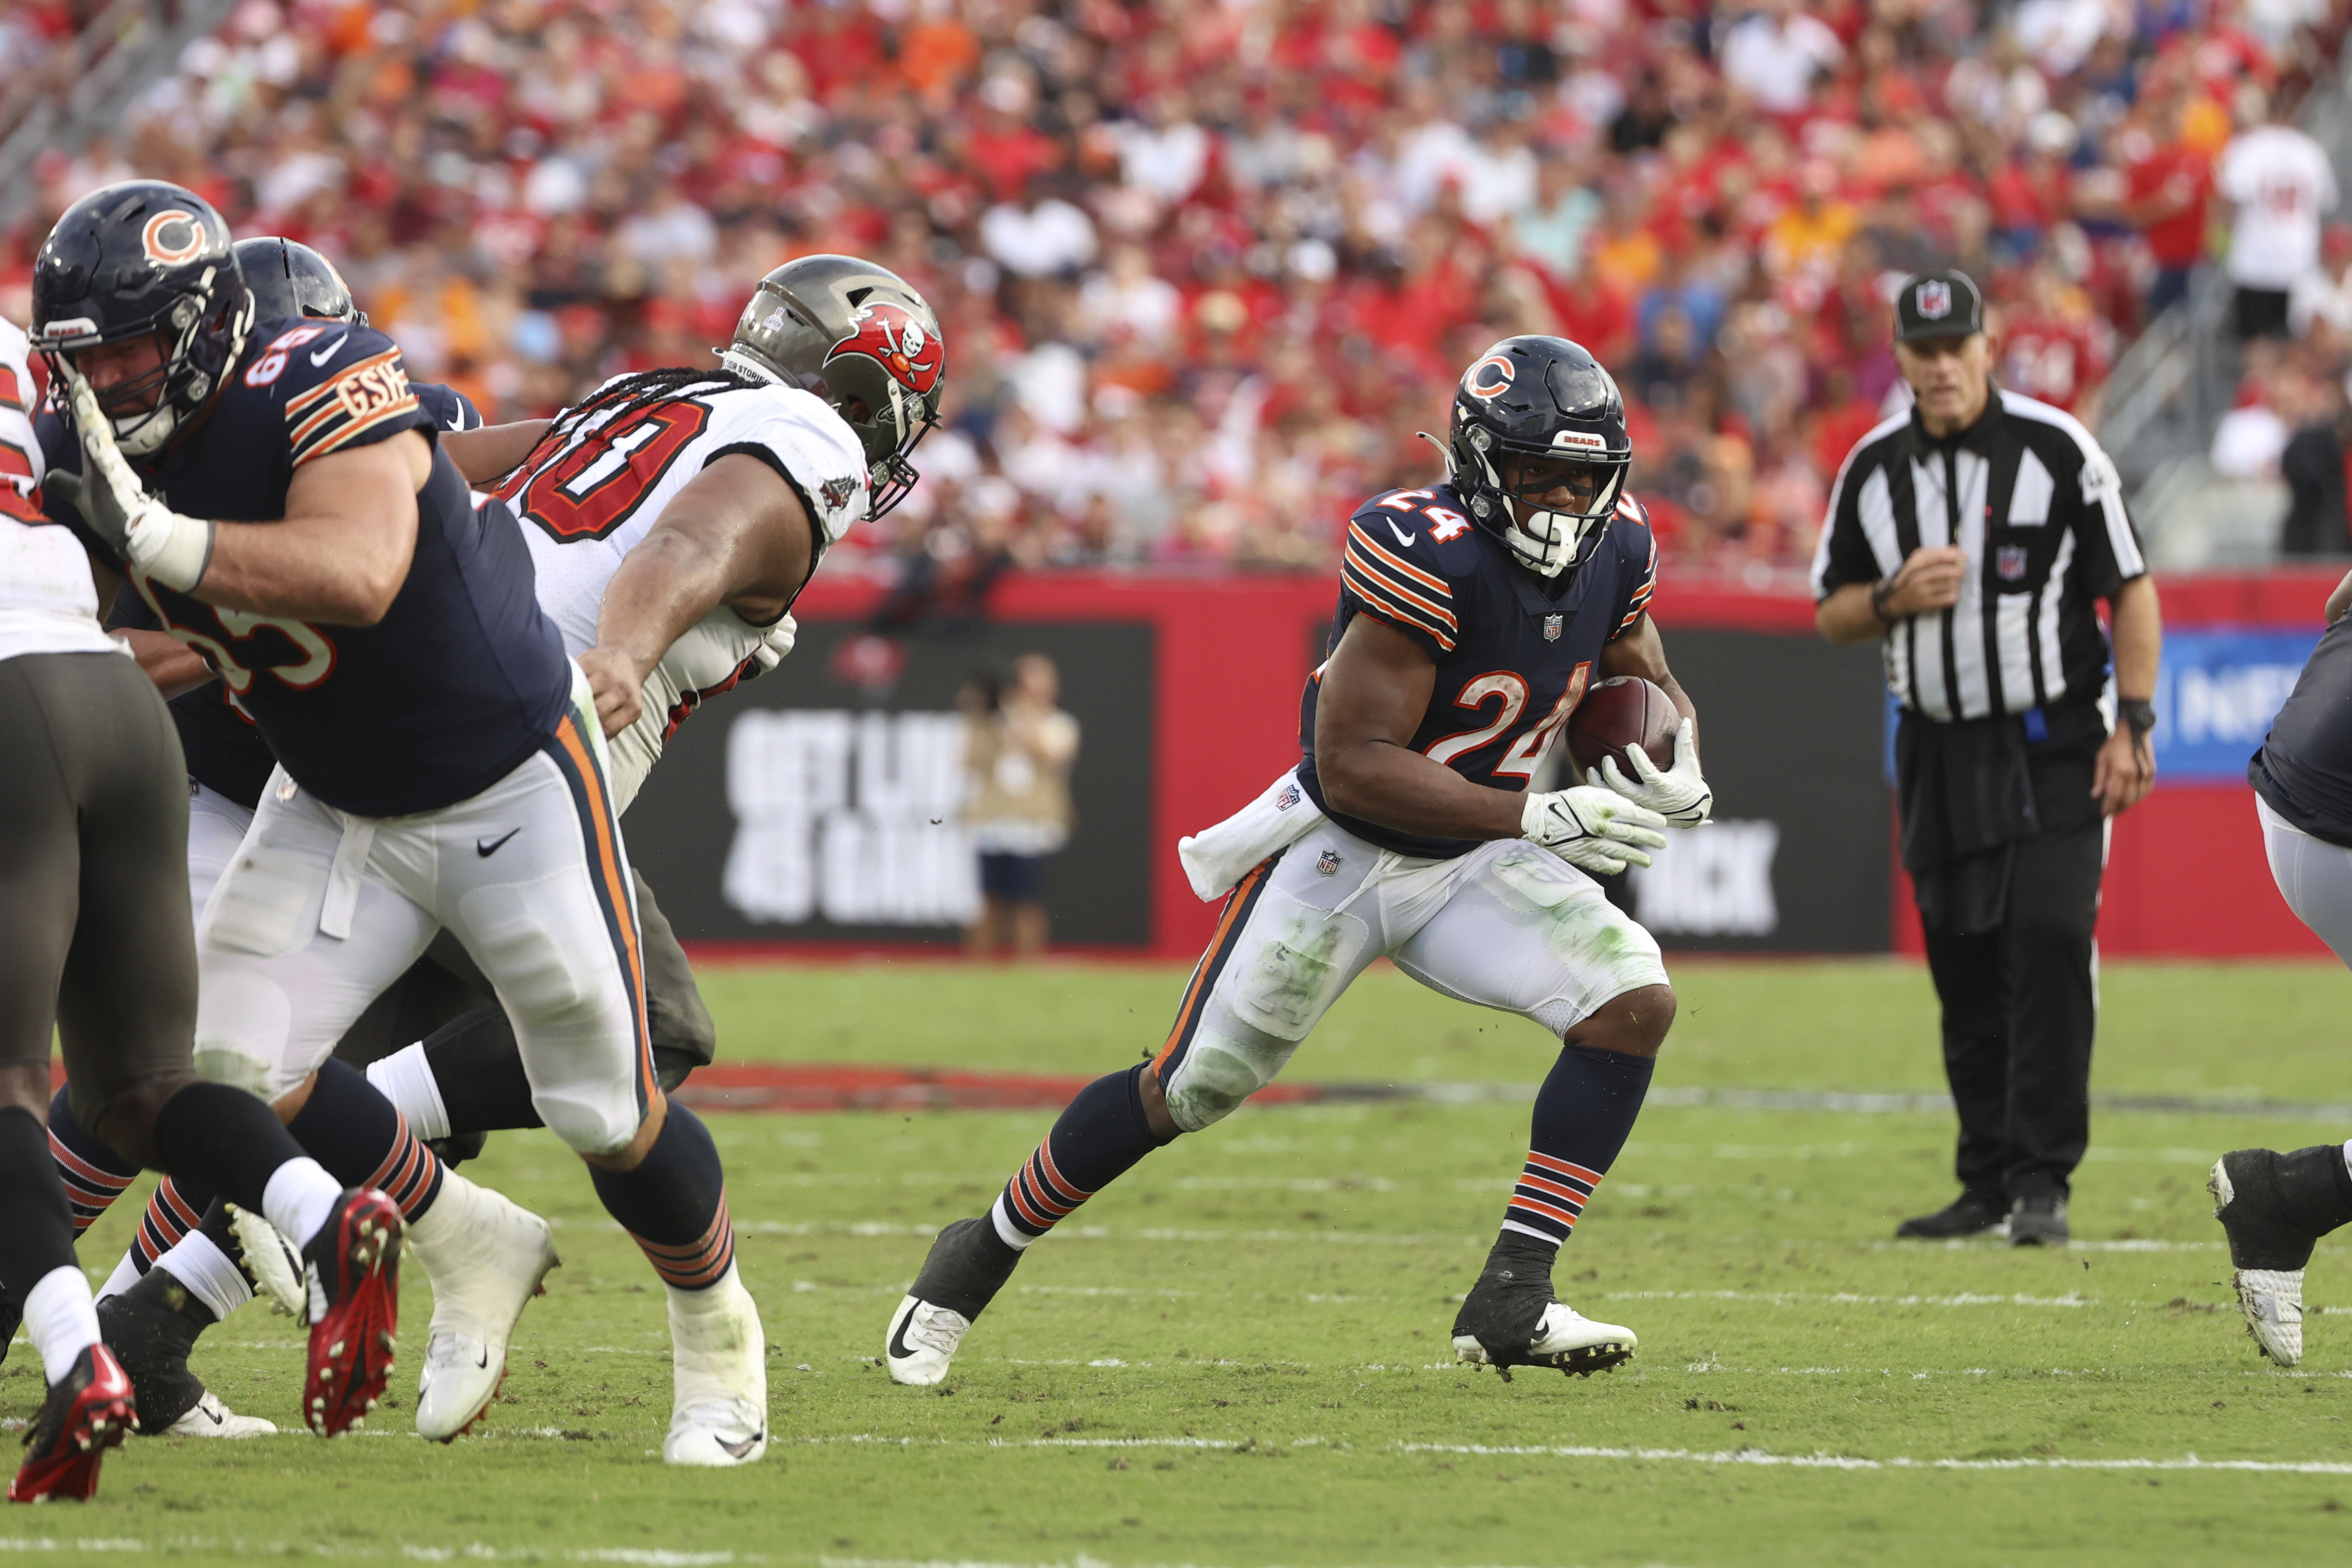 Bears running back Khalil Herbert (24) had 18 carries for 100 yards against the Buccaneers' top-ranked run defense last week —the most by a single rusher against the Buccaneers this season.